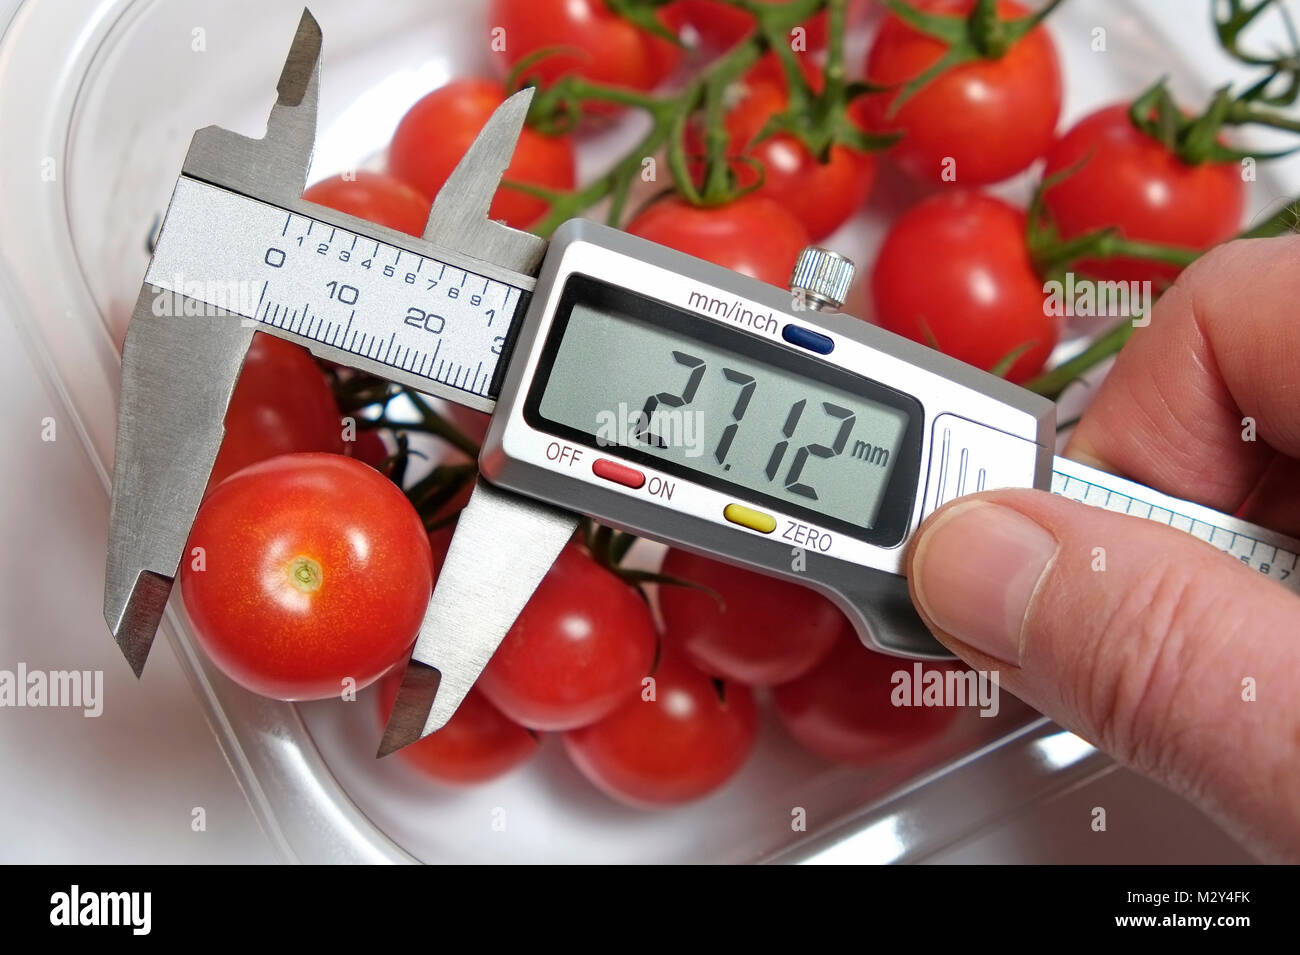 measuring tomato with digital calipers Stock Photo